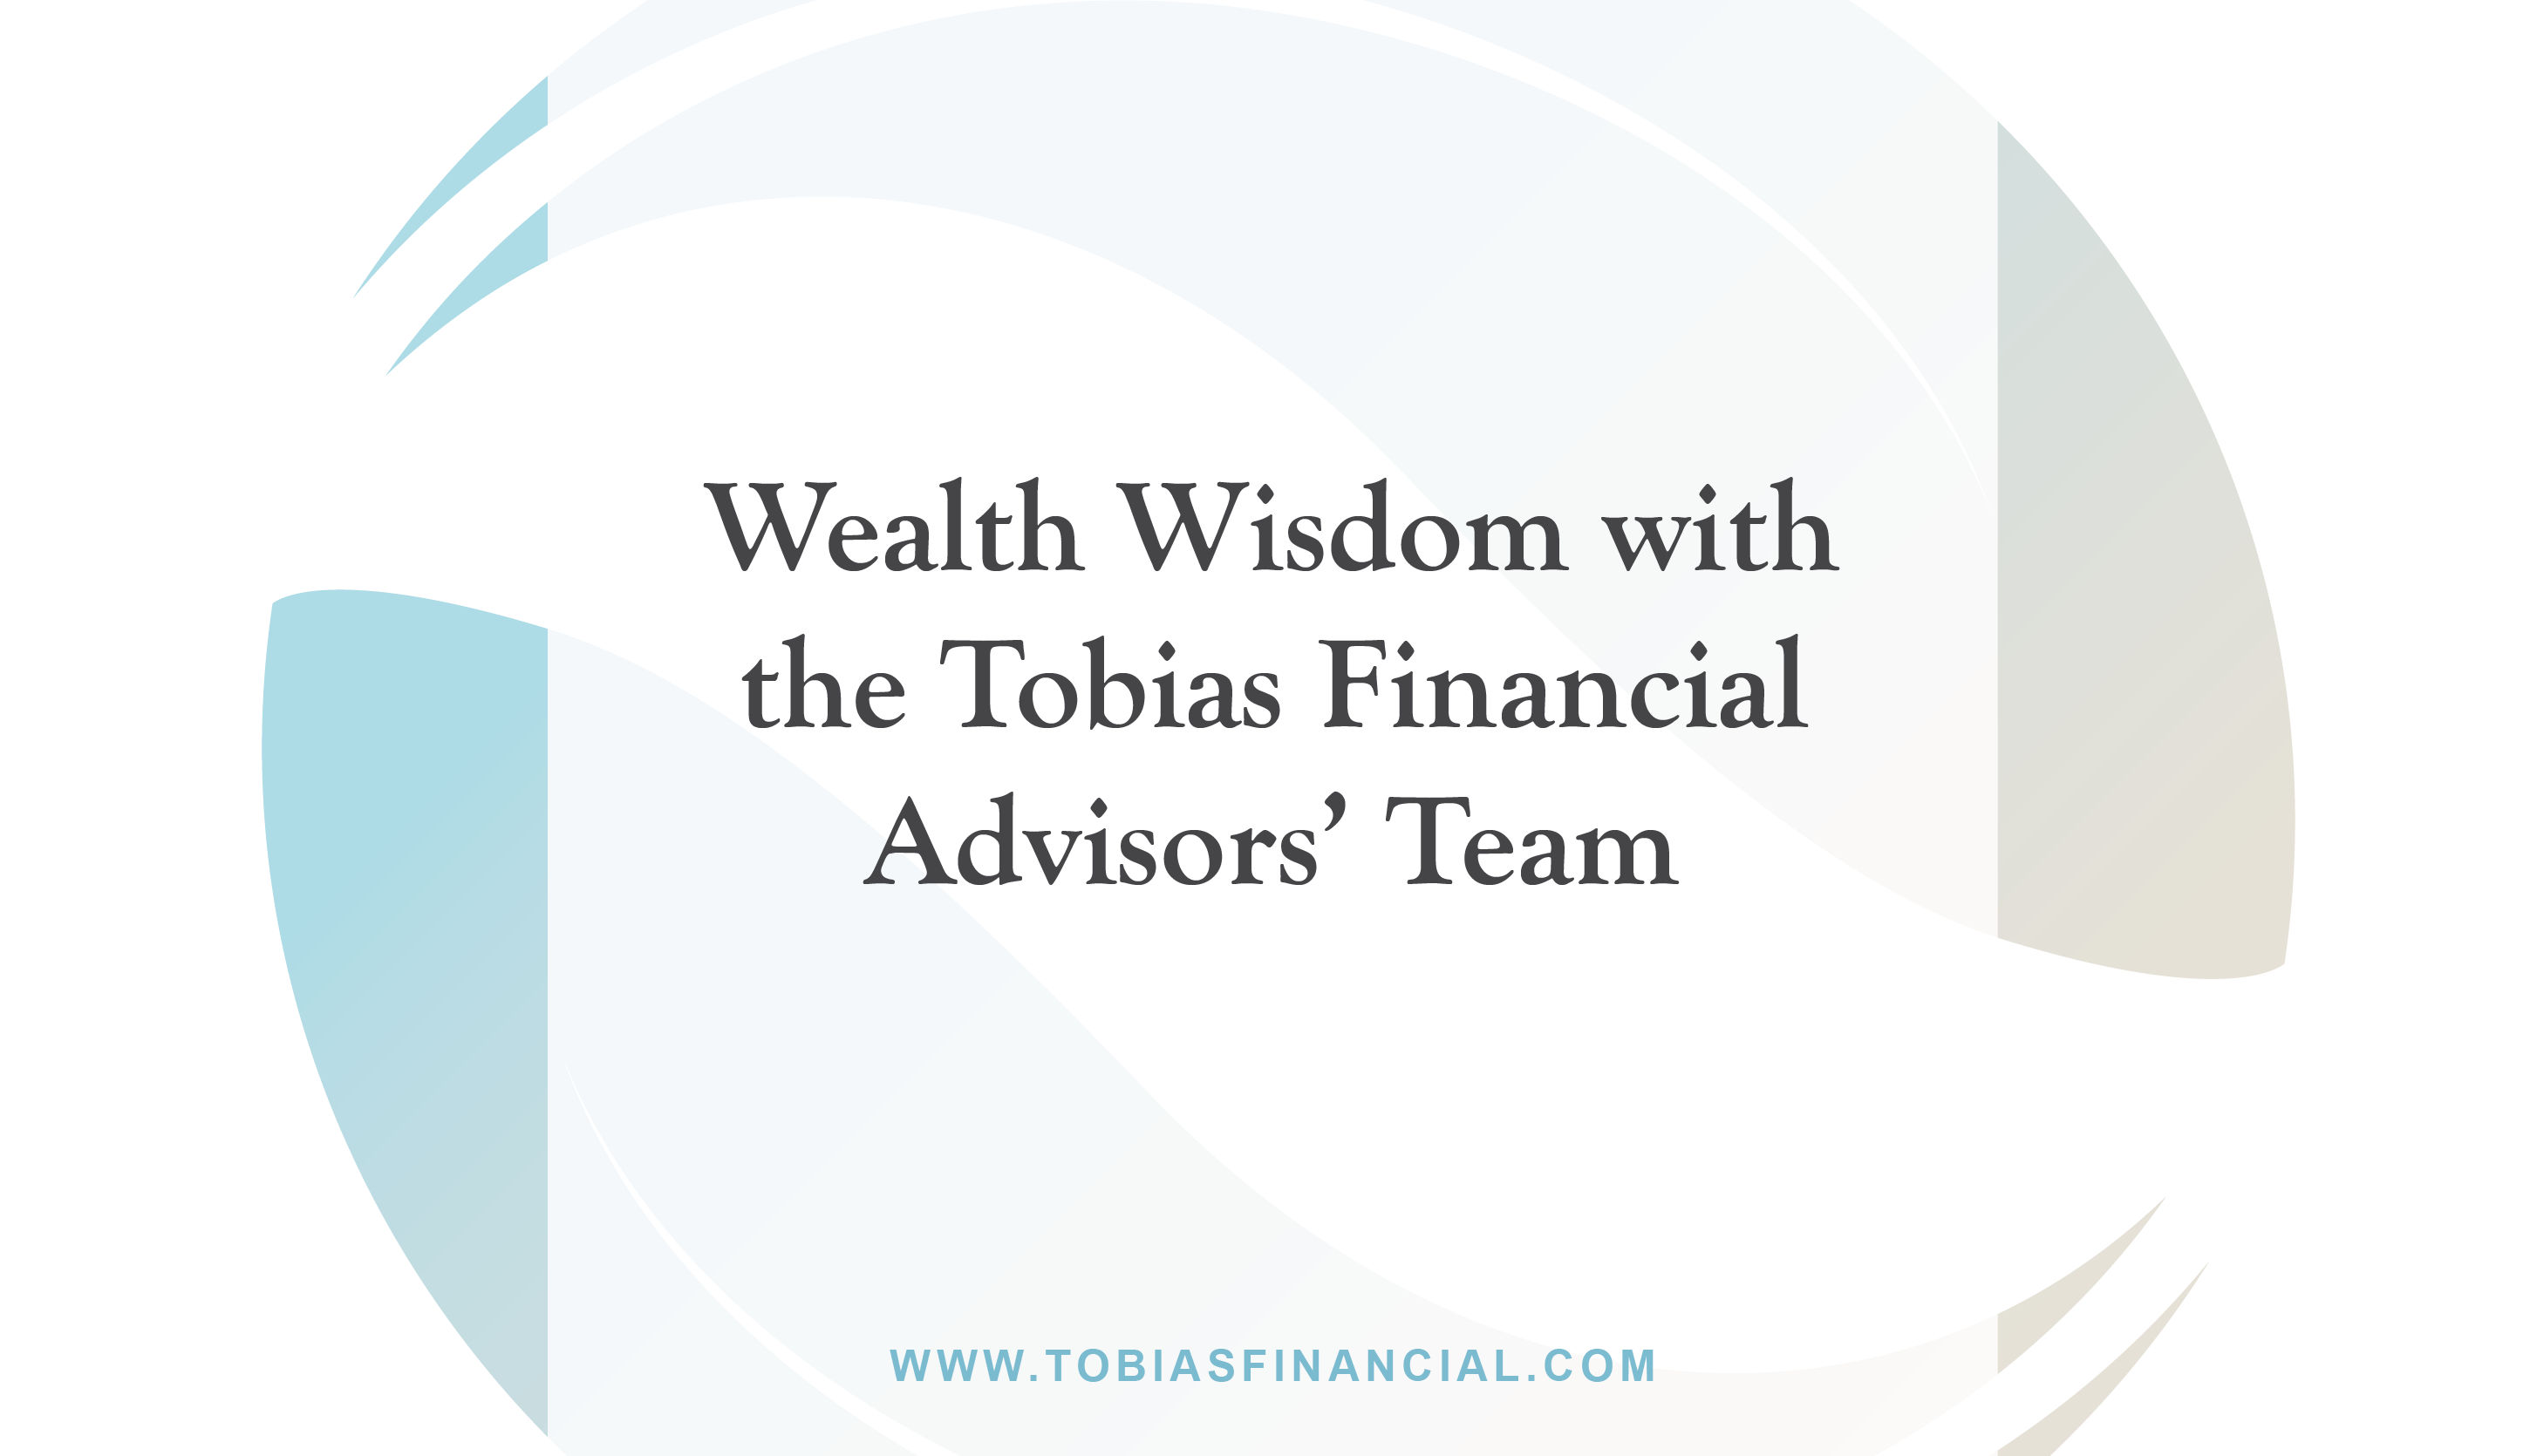 Wealth Wisdom with the Tobias Financial Advisors' Team